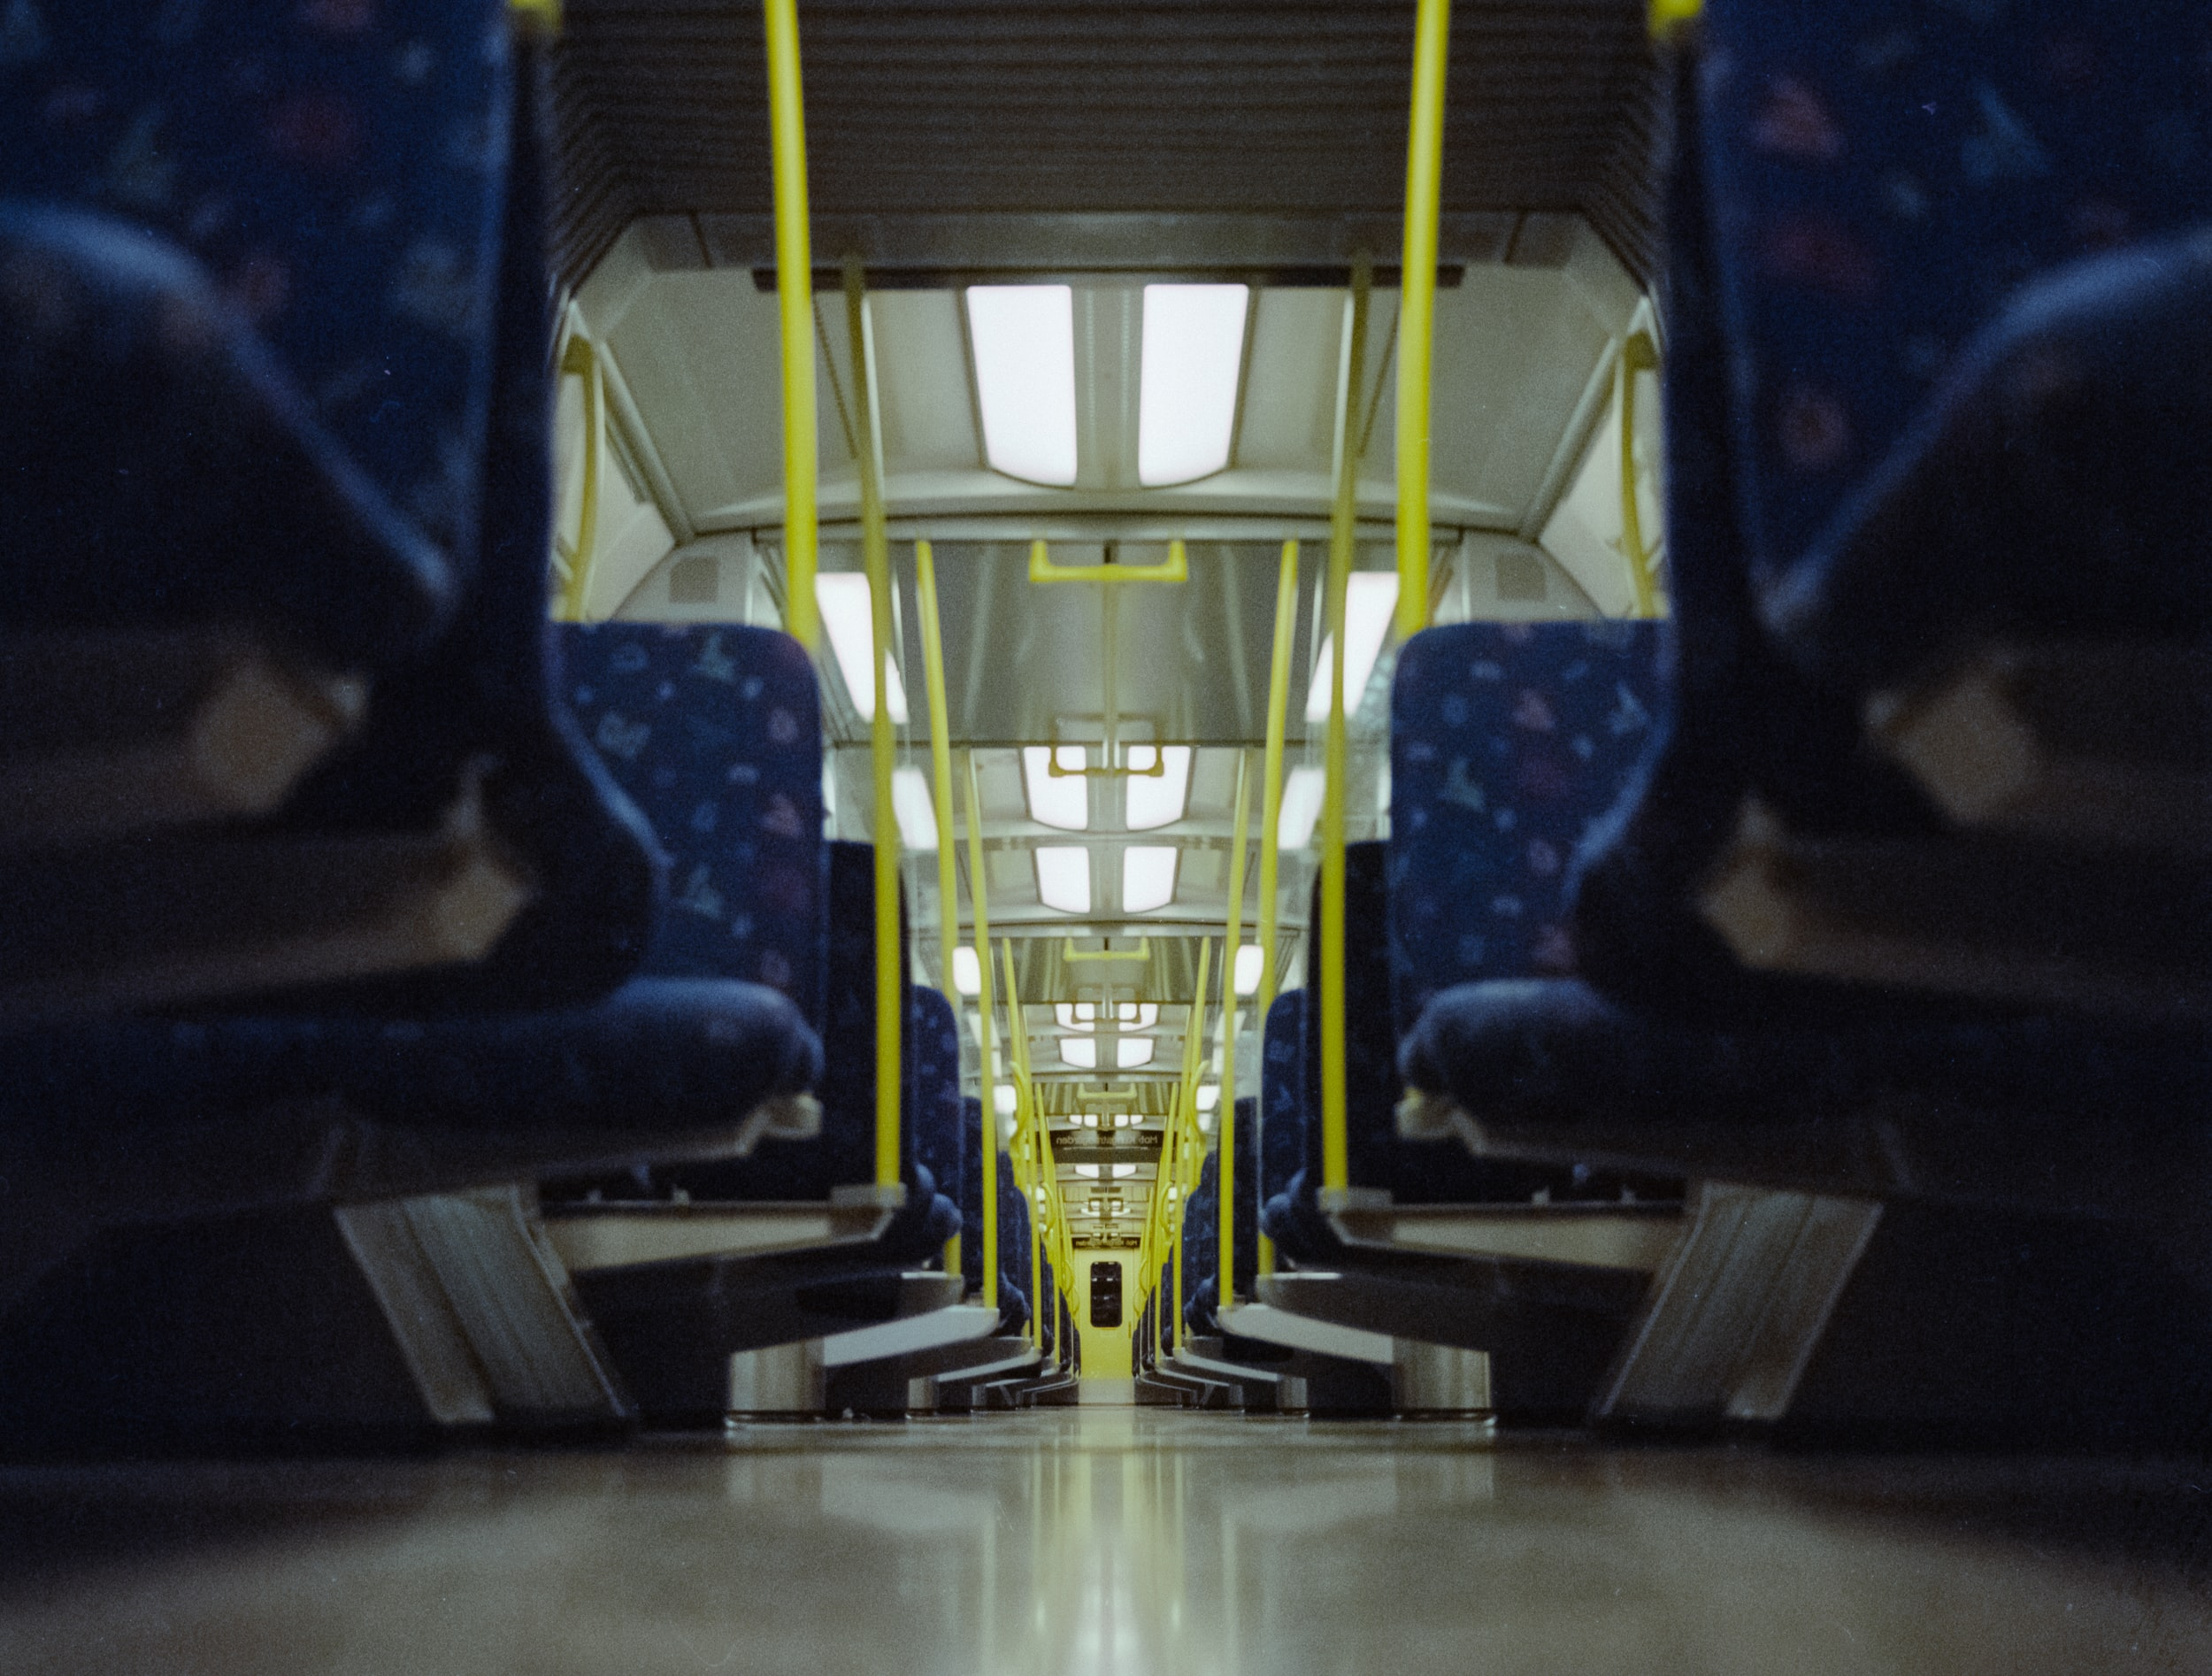 Interior shot of a lit train with dark blue seats taken from the floor